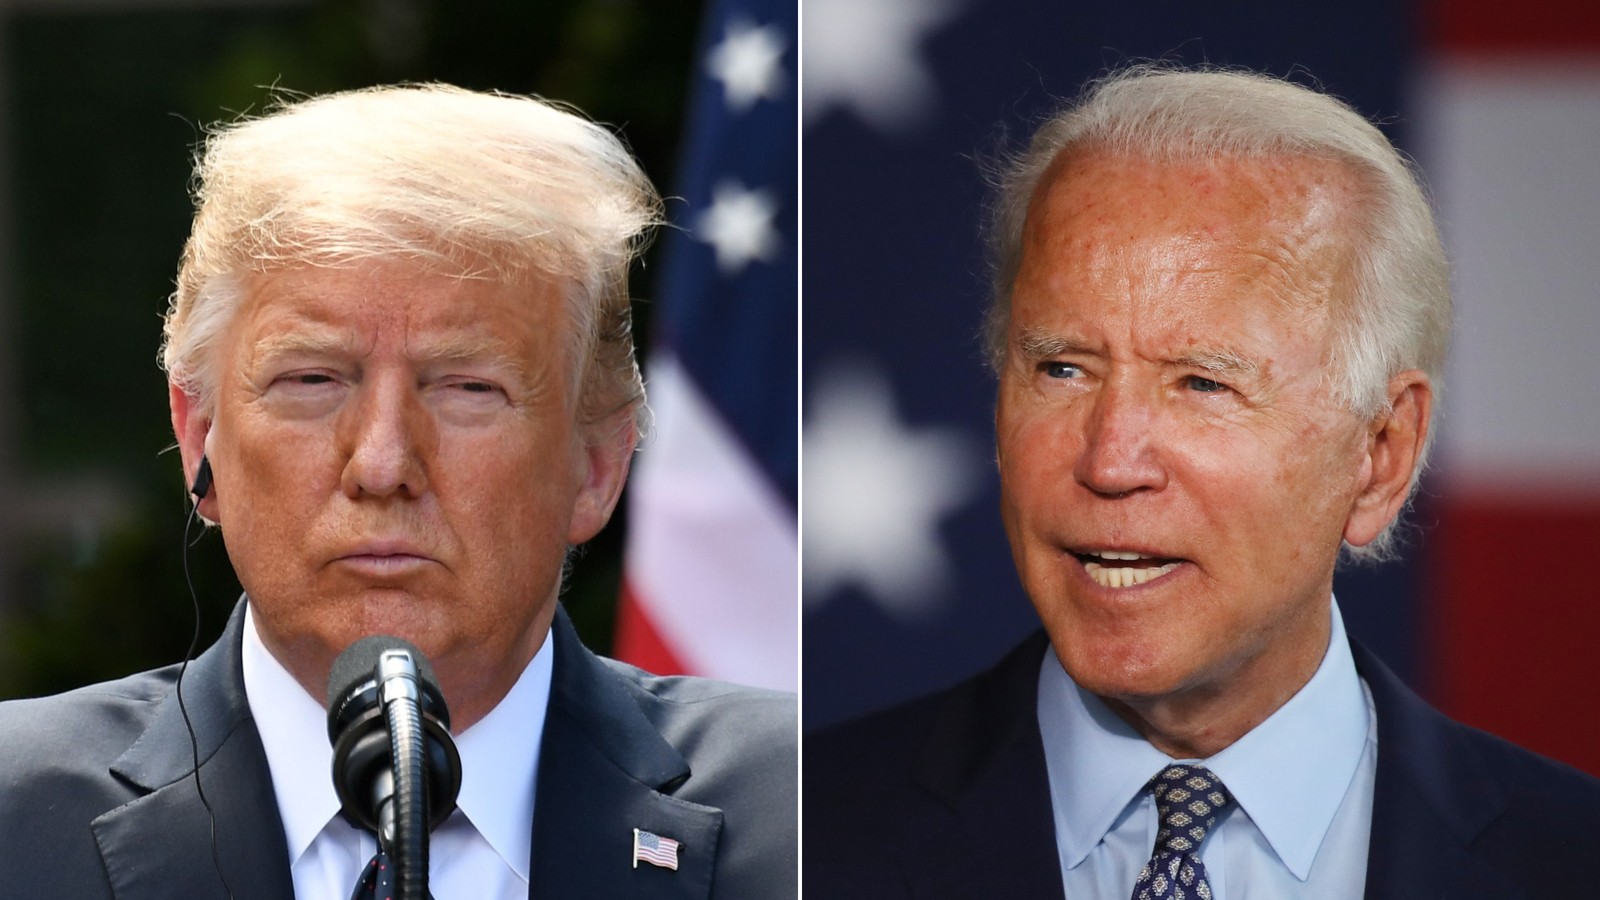 Donald Trump and Joe Biden are seen in undated photos. (Getty Images via CNN)